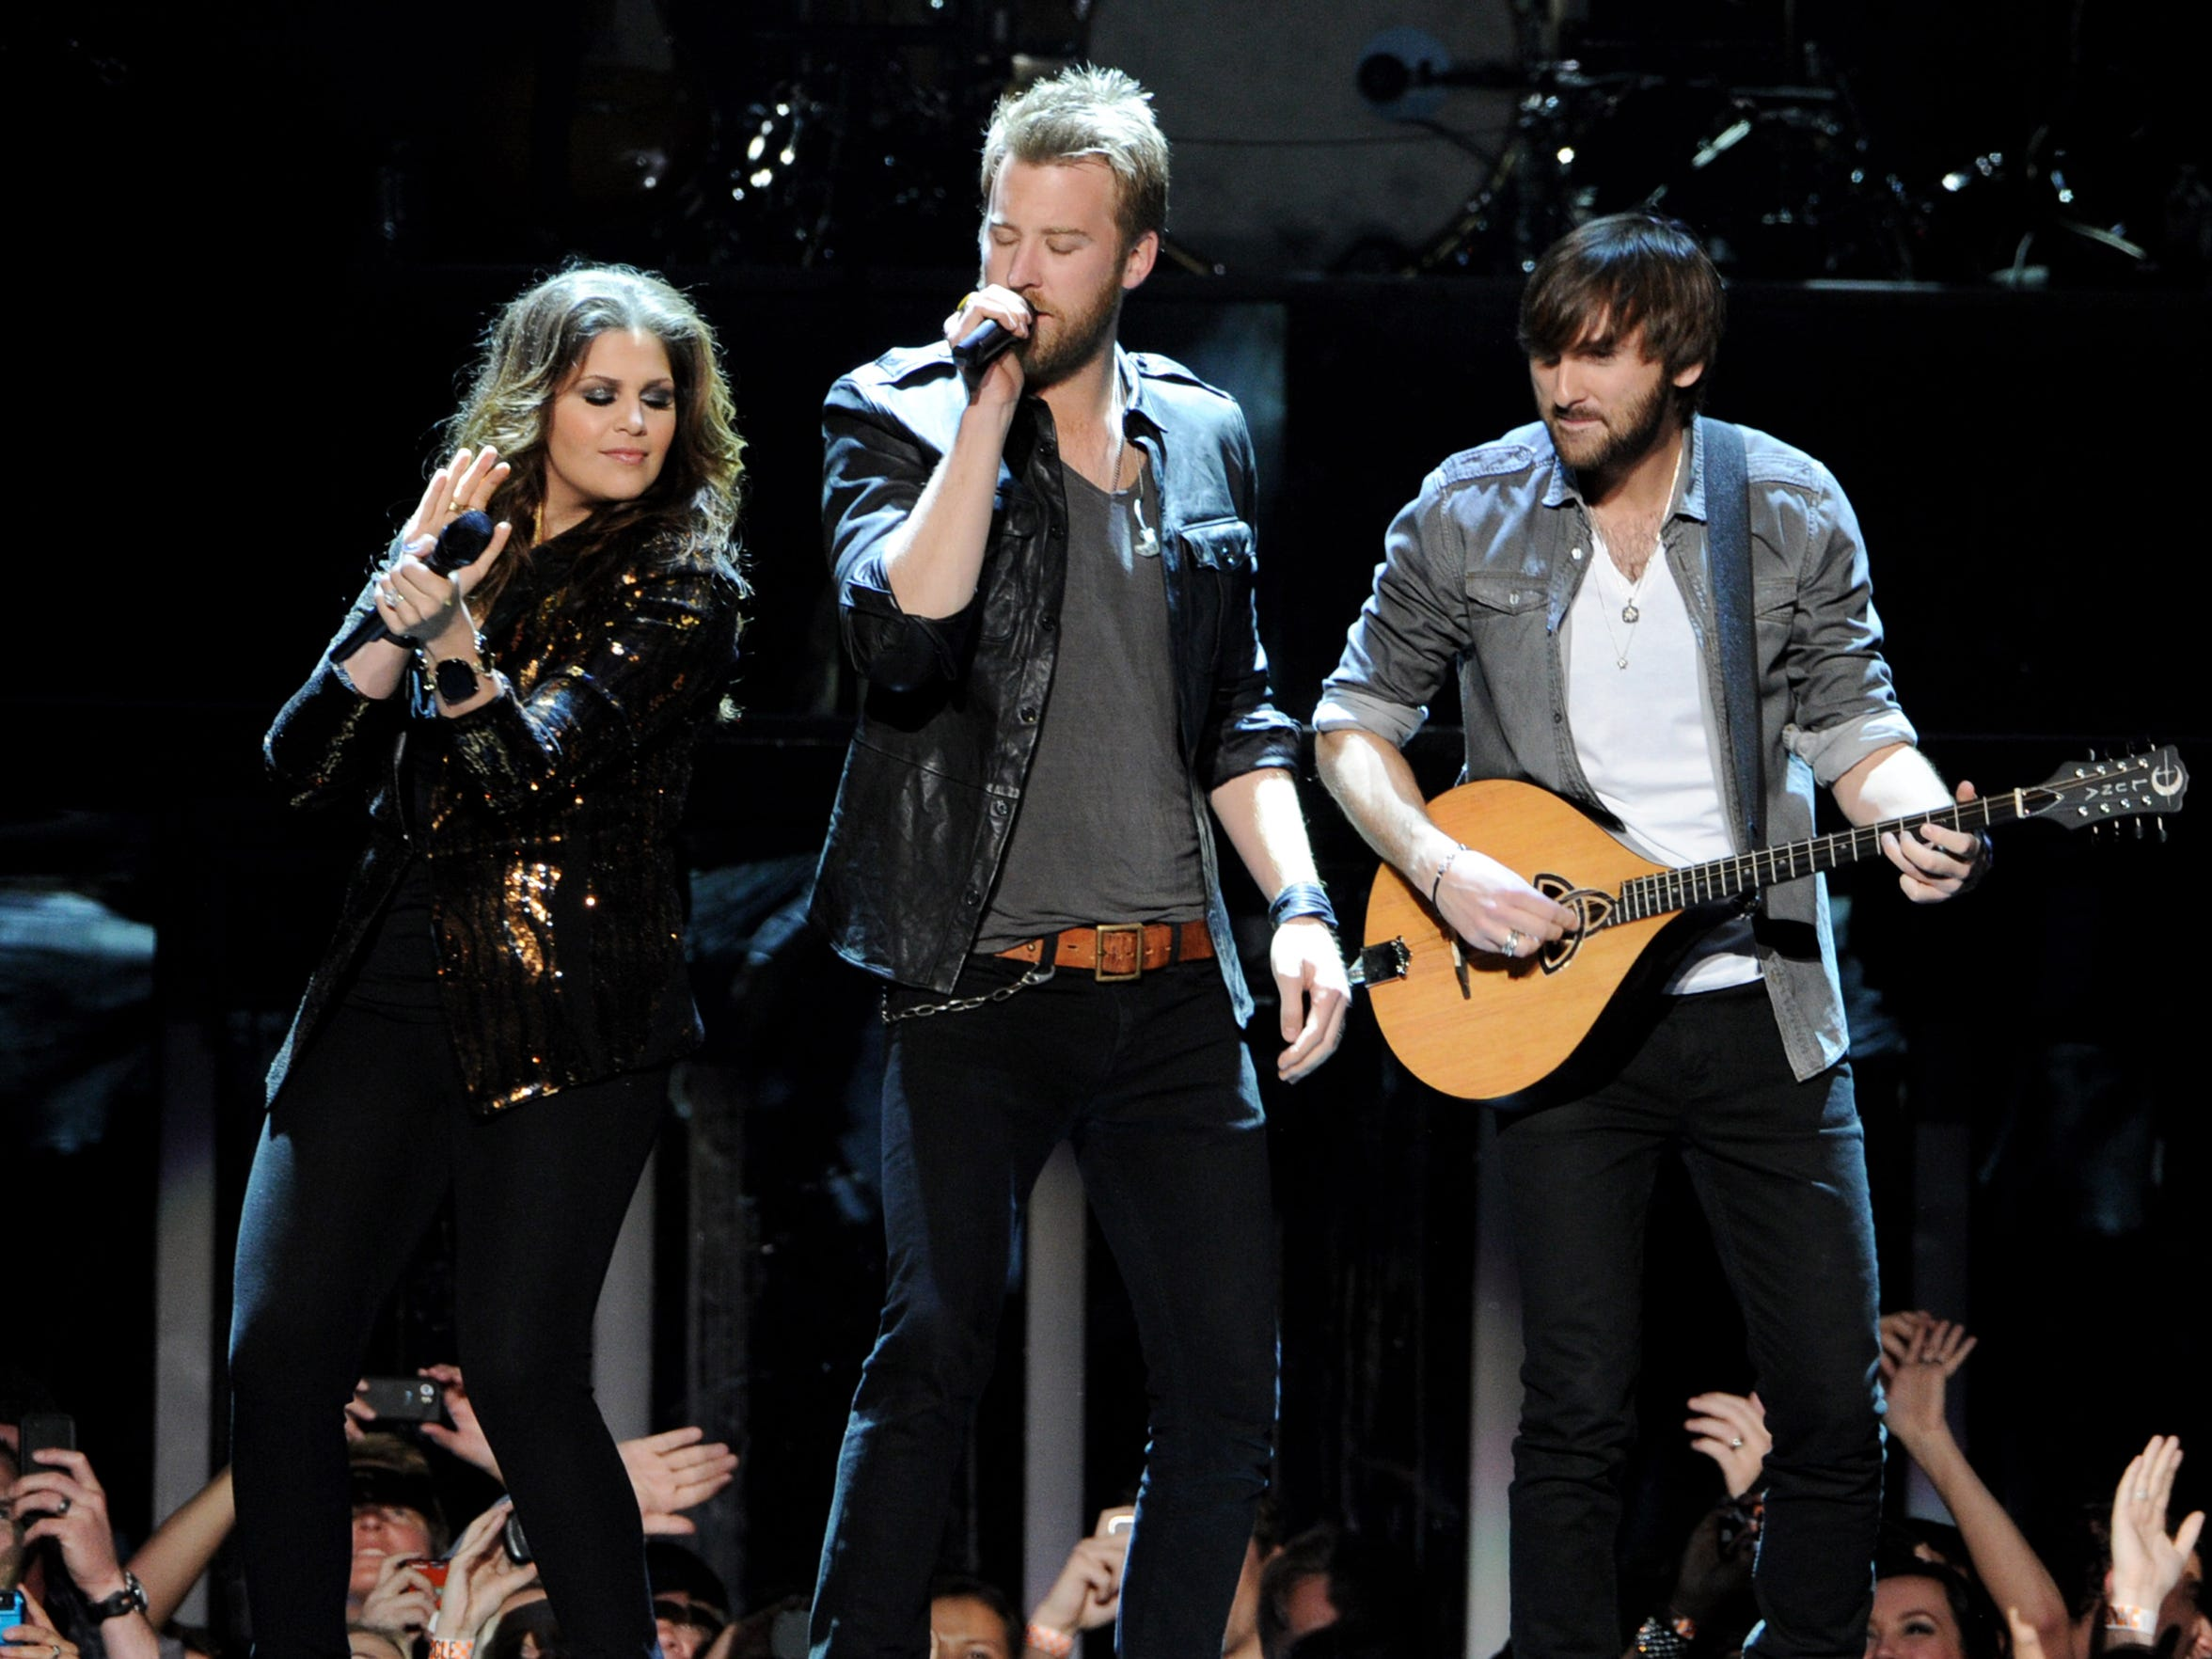 From left to right, musicians Hillary Scott, Charles Kelley and Dave Haywood of Lady Antebellum. The trio will perform at 7:30 p.m. June 1 at the Isleta Amphitheater in Albuquerque.